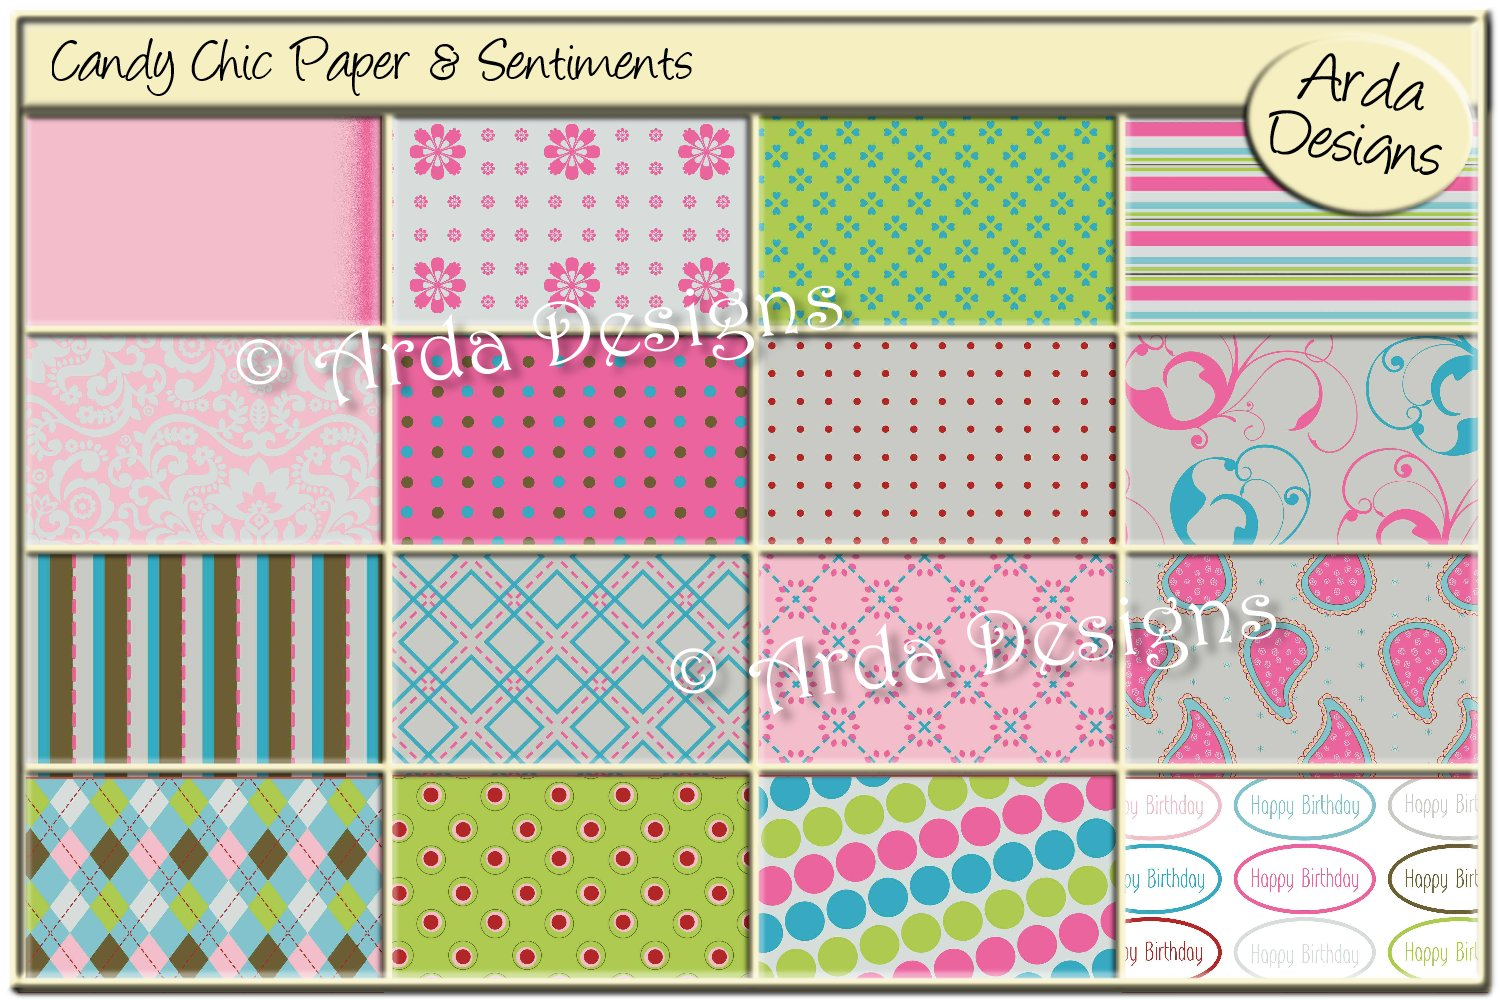 Download Free Candy Chic Papers Sentiments Graphic By Arda Designs for Cricut Explore, Silhouette and other cutting machines.